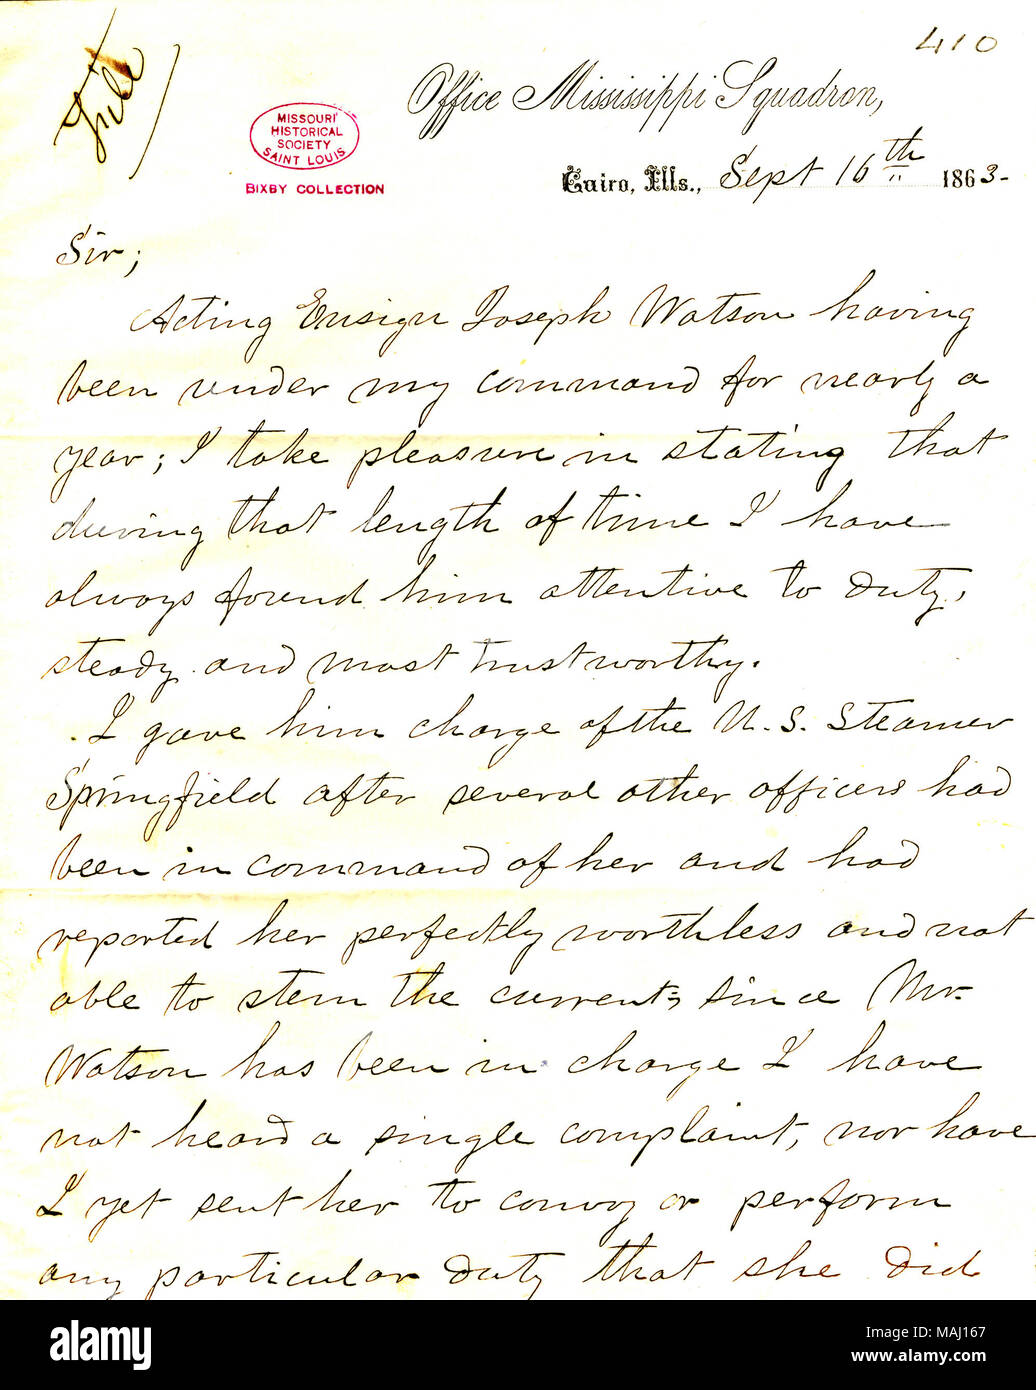 recommendation for promotion of acting ensign joseph watson to acting master title letter from leroy fitch office mississippi squadron cairo illinois